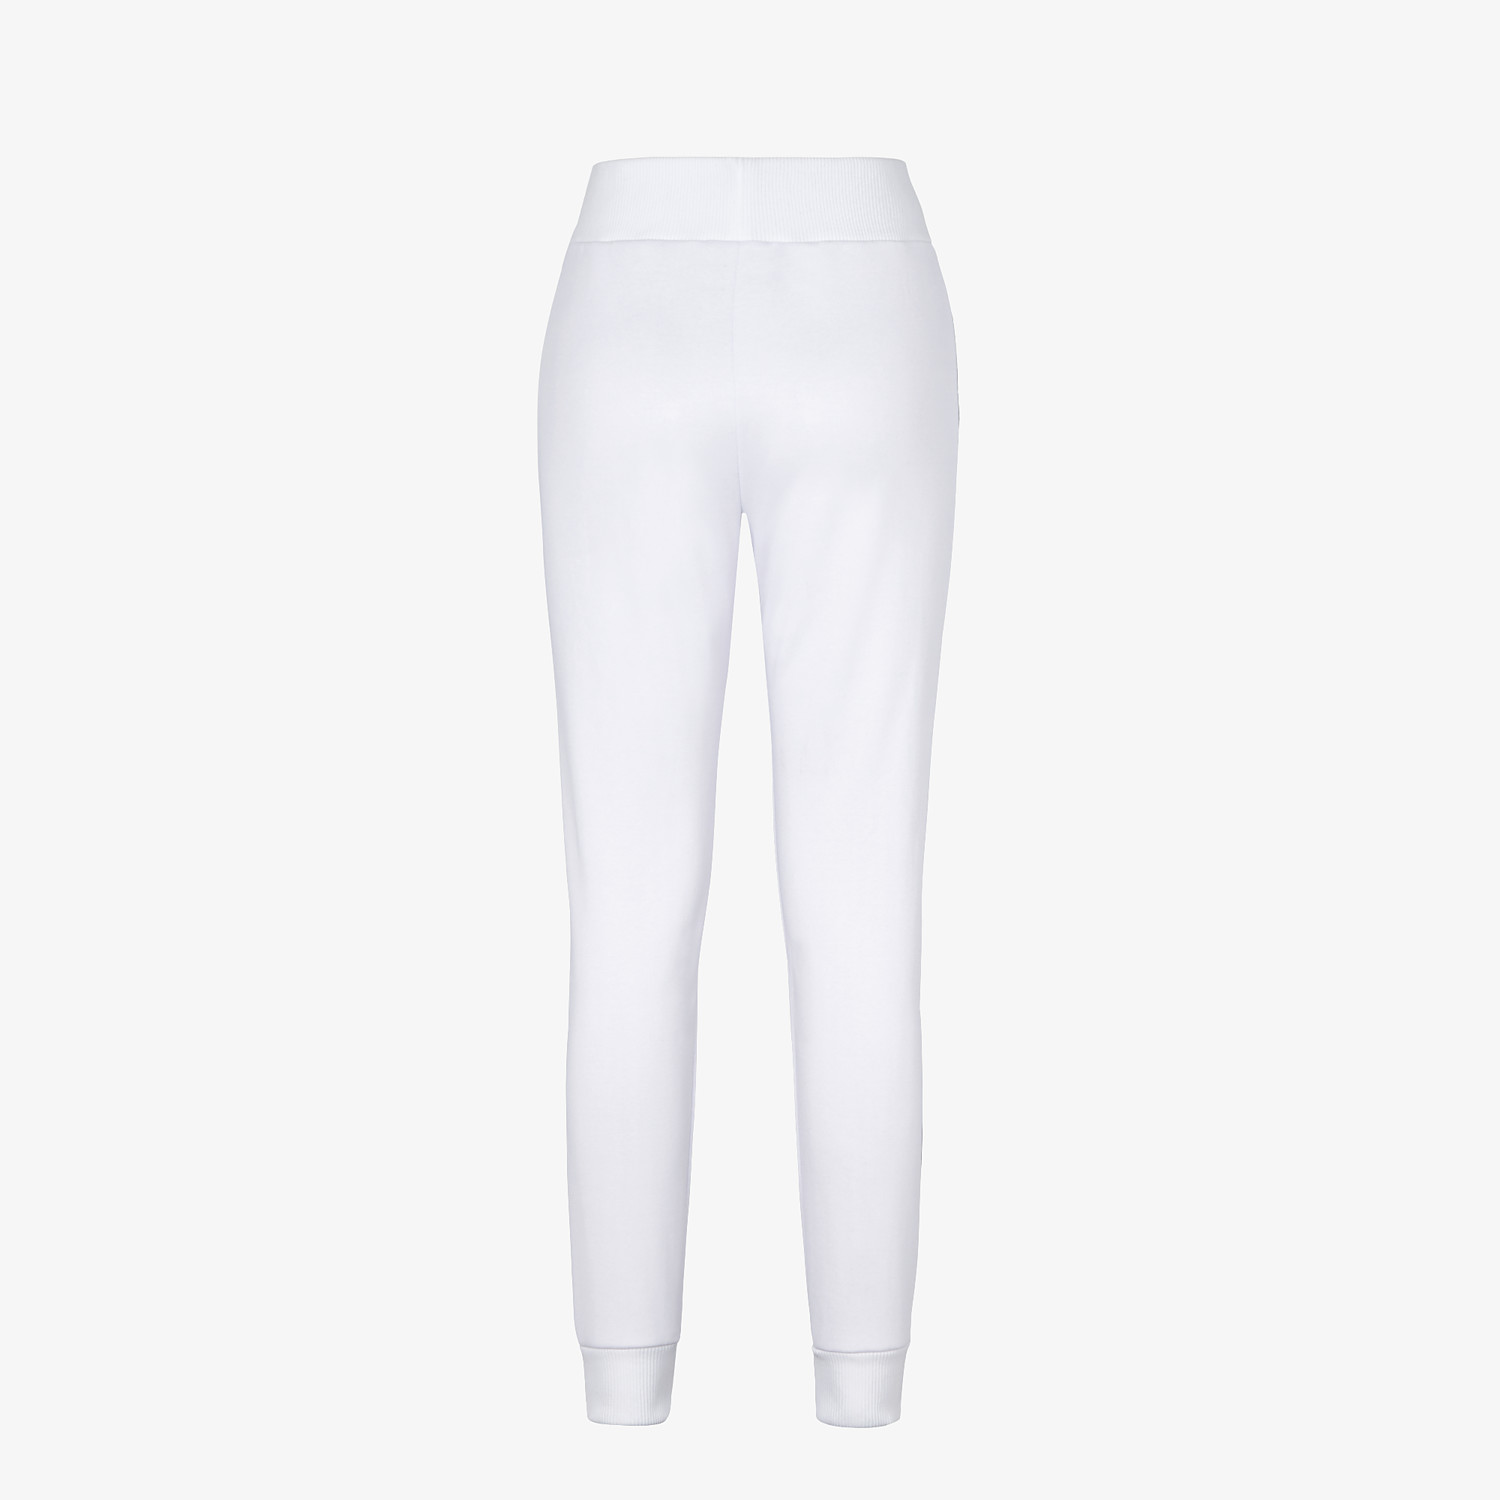 FENDI PANTS - White jersey jogging pants - view 2 detail